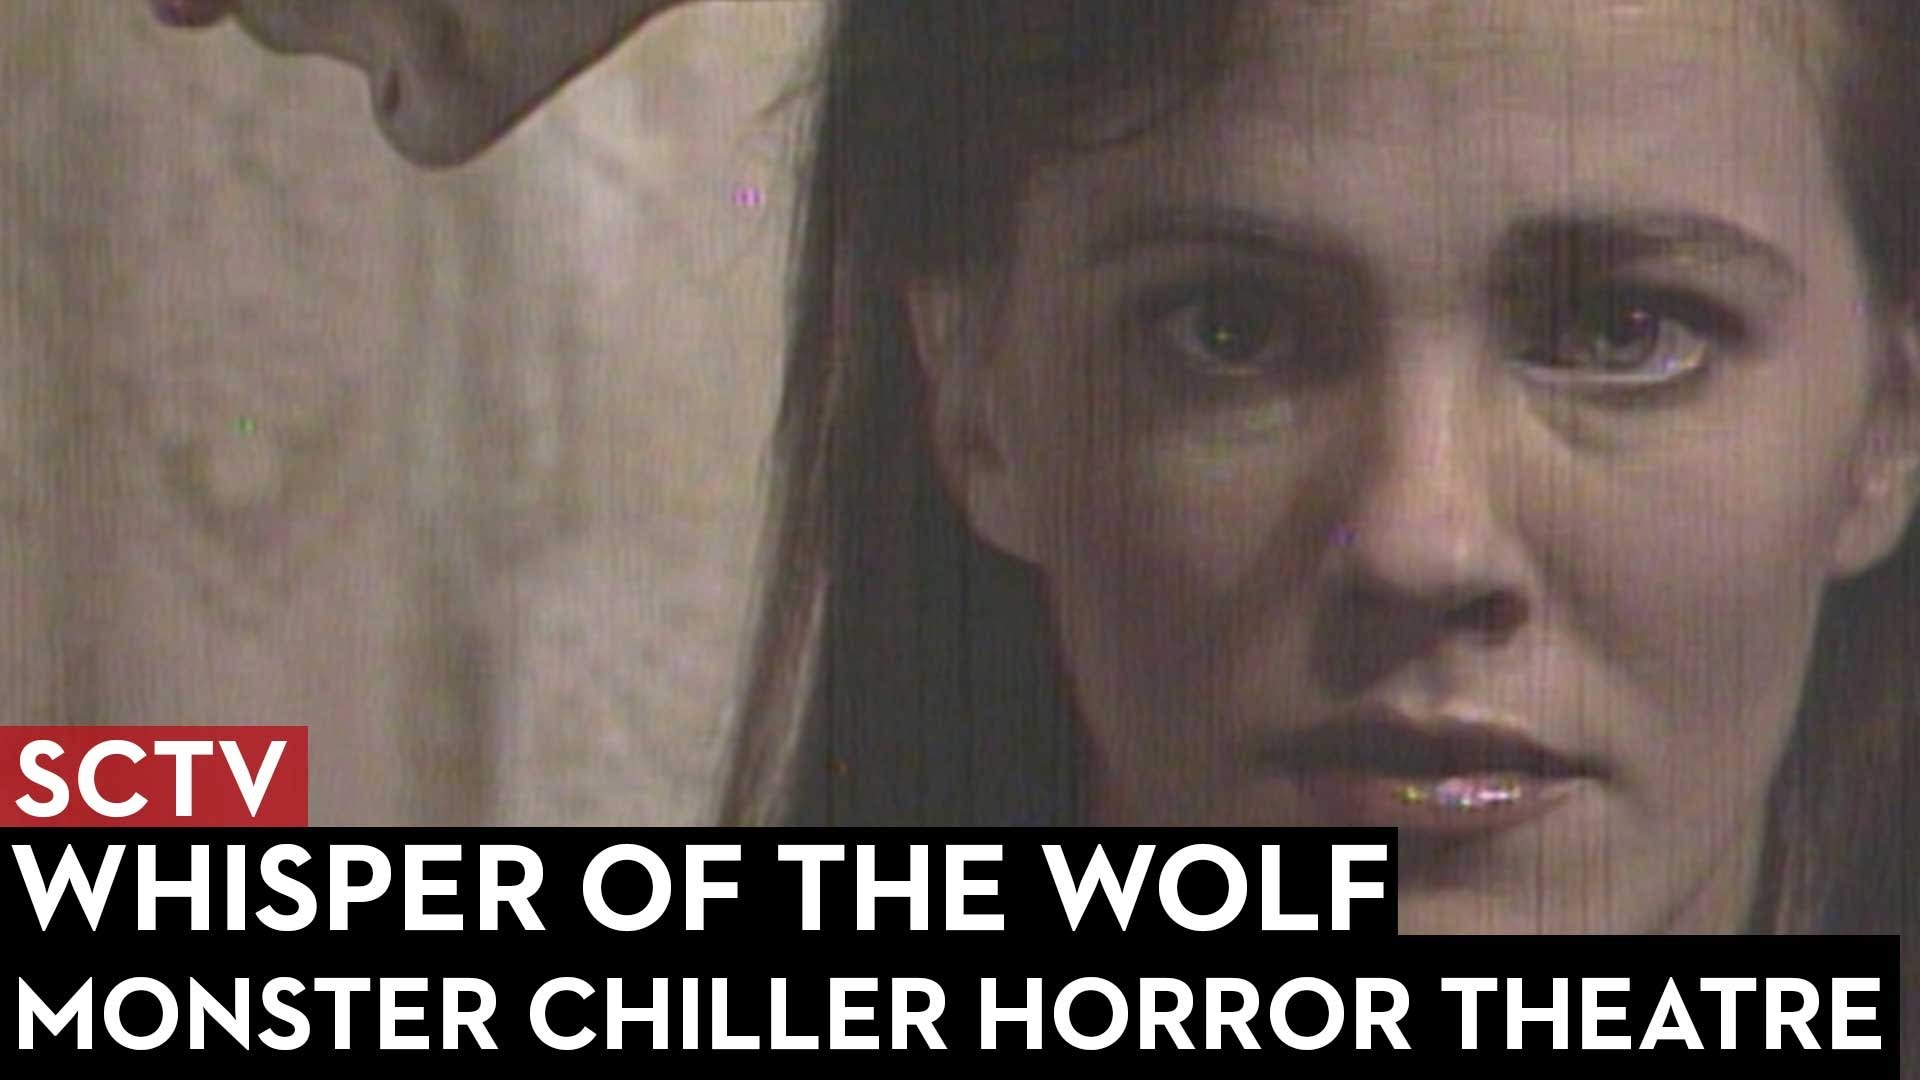 SCTV Monster Chiller Horror Theatre: Whispers of the Wolf